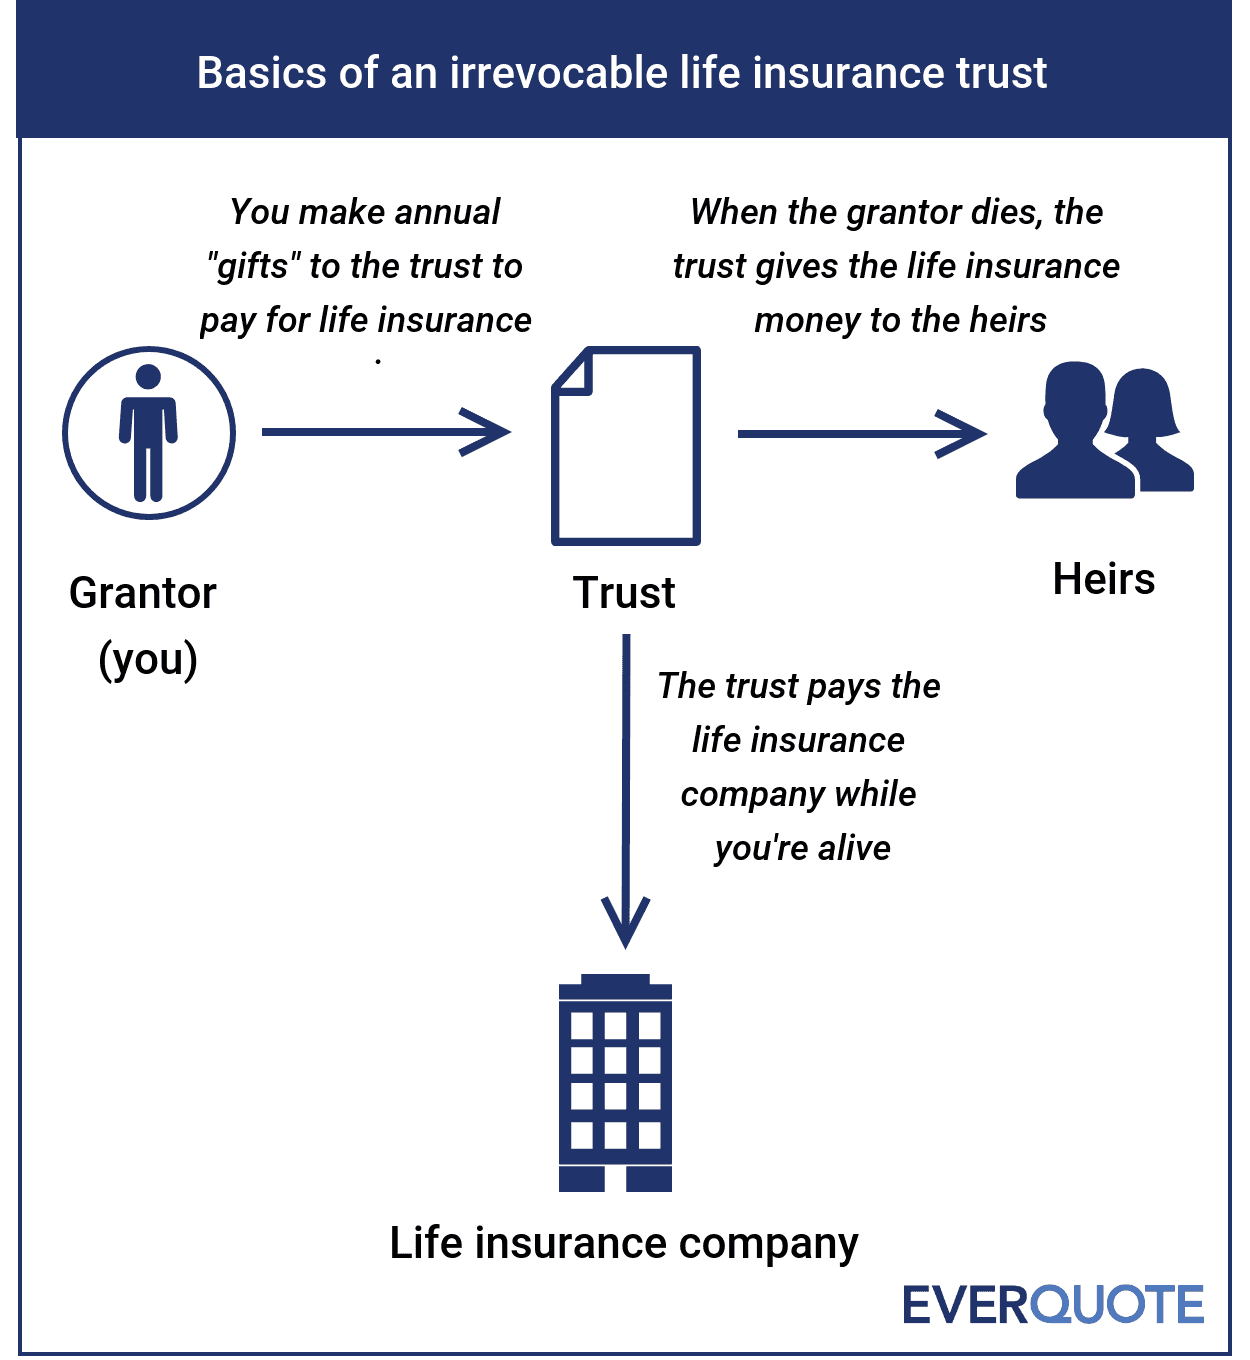 Basics of an irrevocable life insurance trust